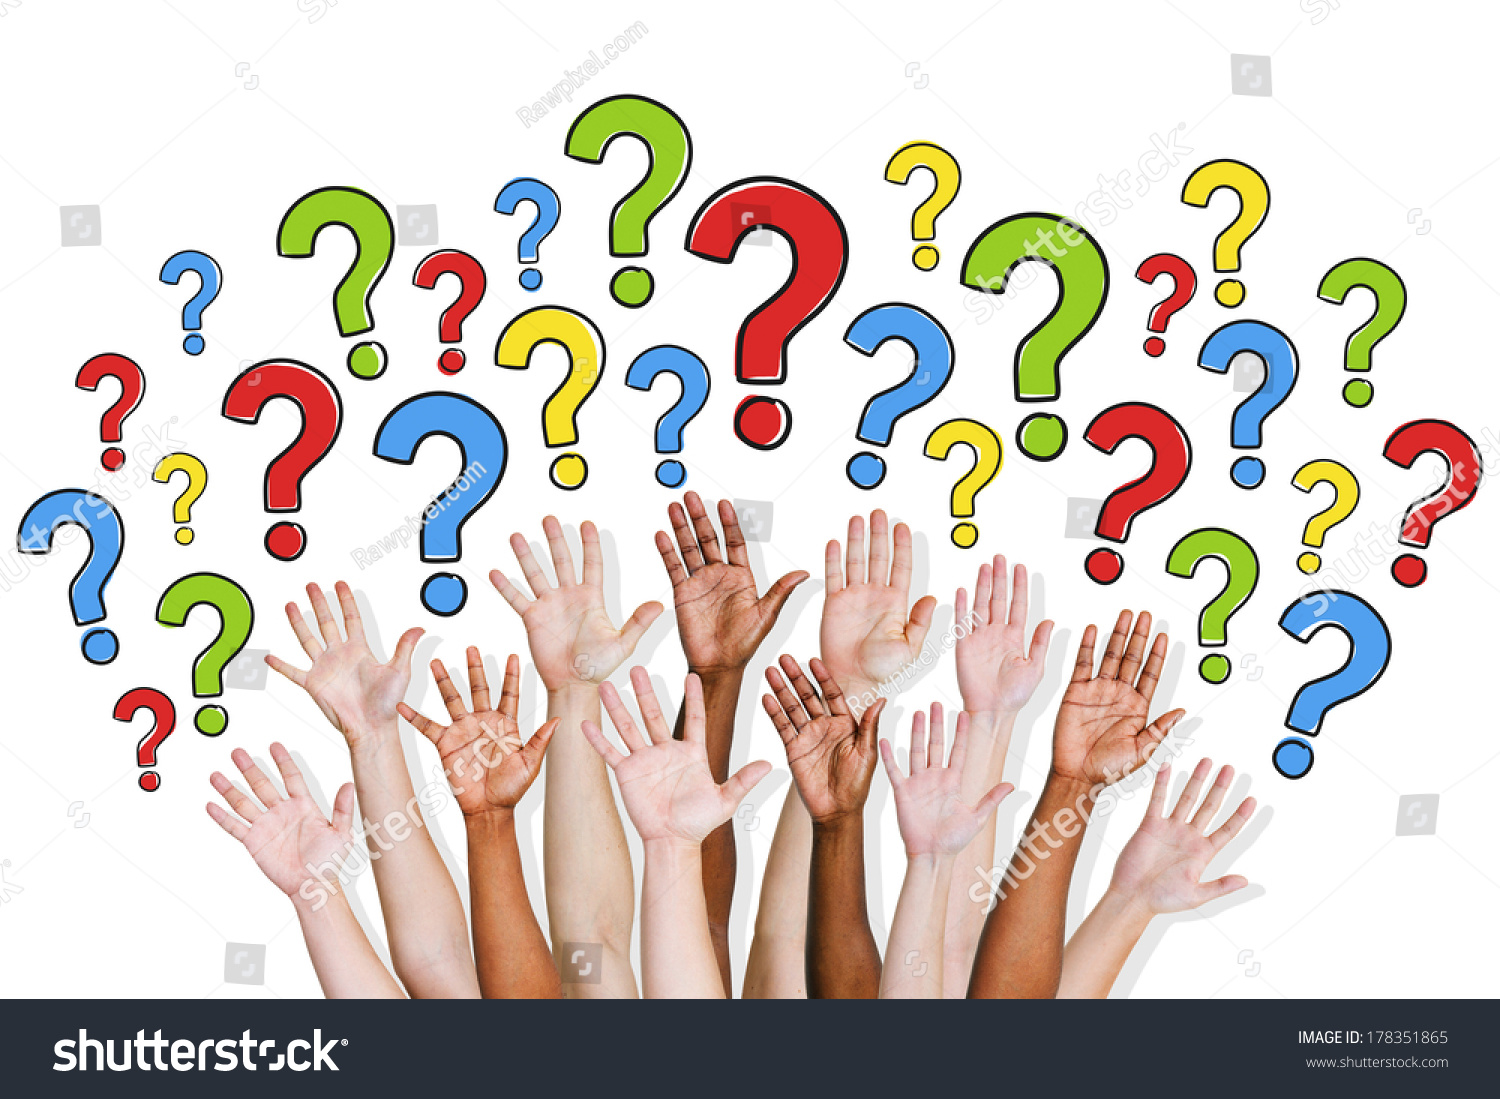 Pics photos clip art cartoon scientist with question mark stock - Diversity Of Hands Raised And Question Marks